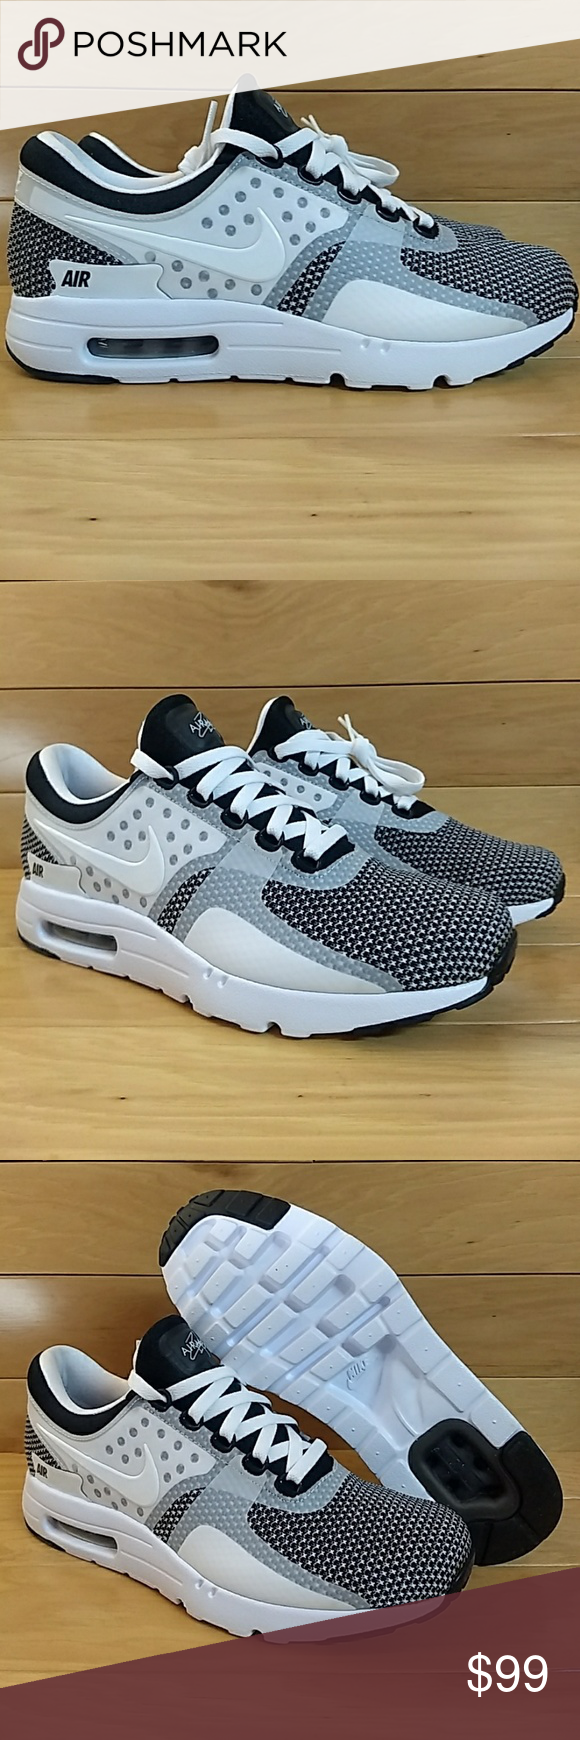 buy popular bd275 a6c21 NEW Nike Air Max Zero Essential Mens Running Shoe Item  Nike Air Max Zero  Essential